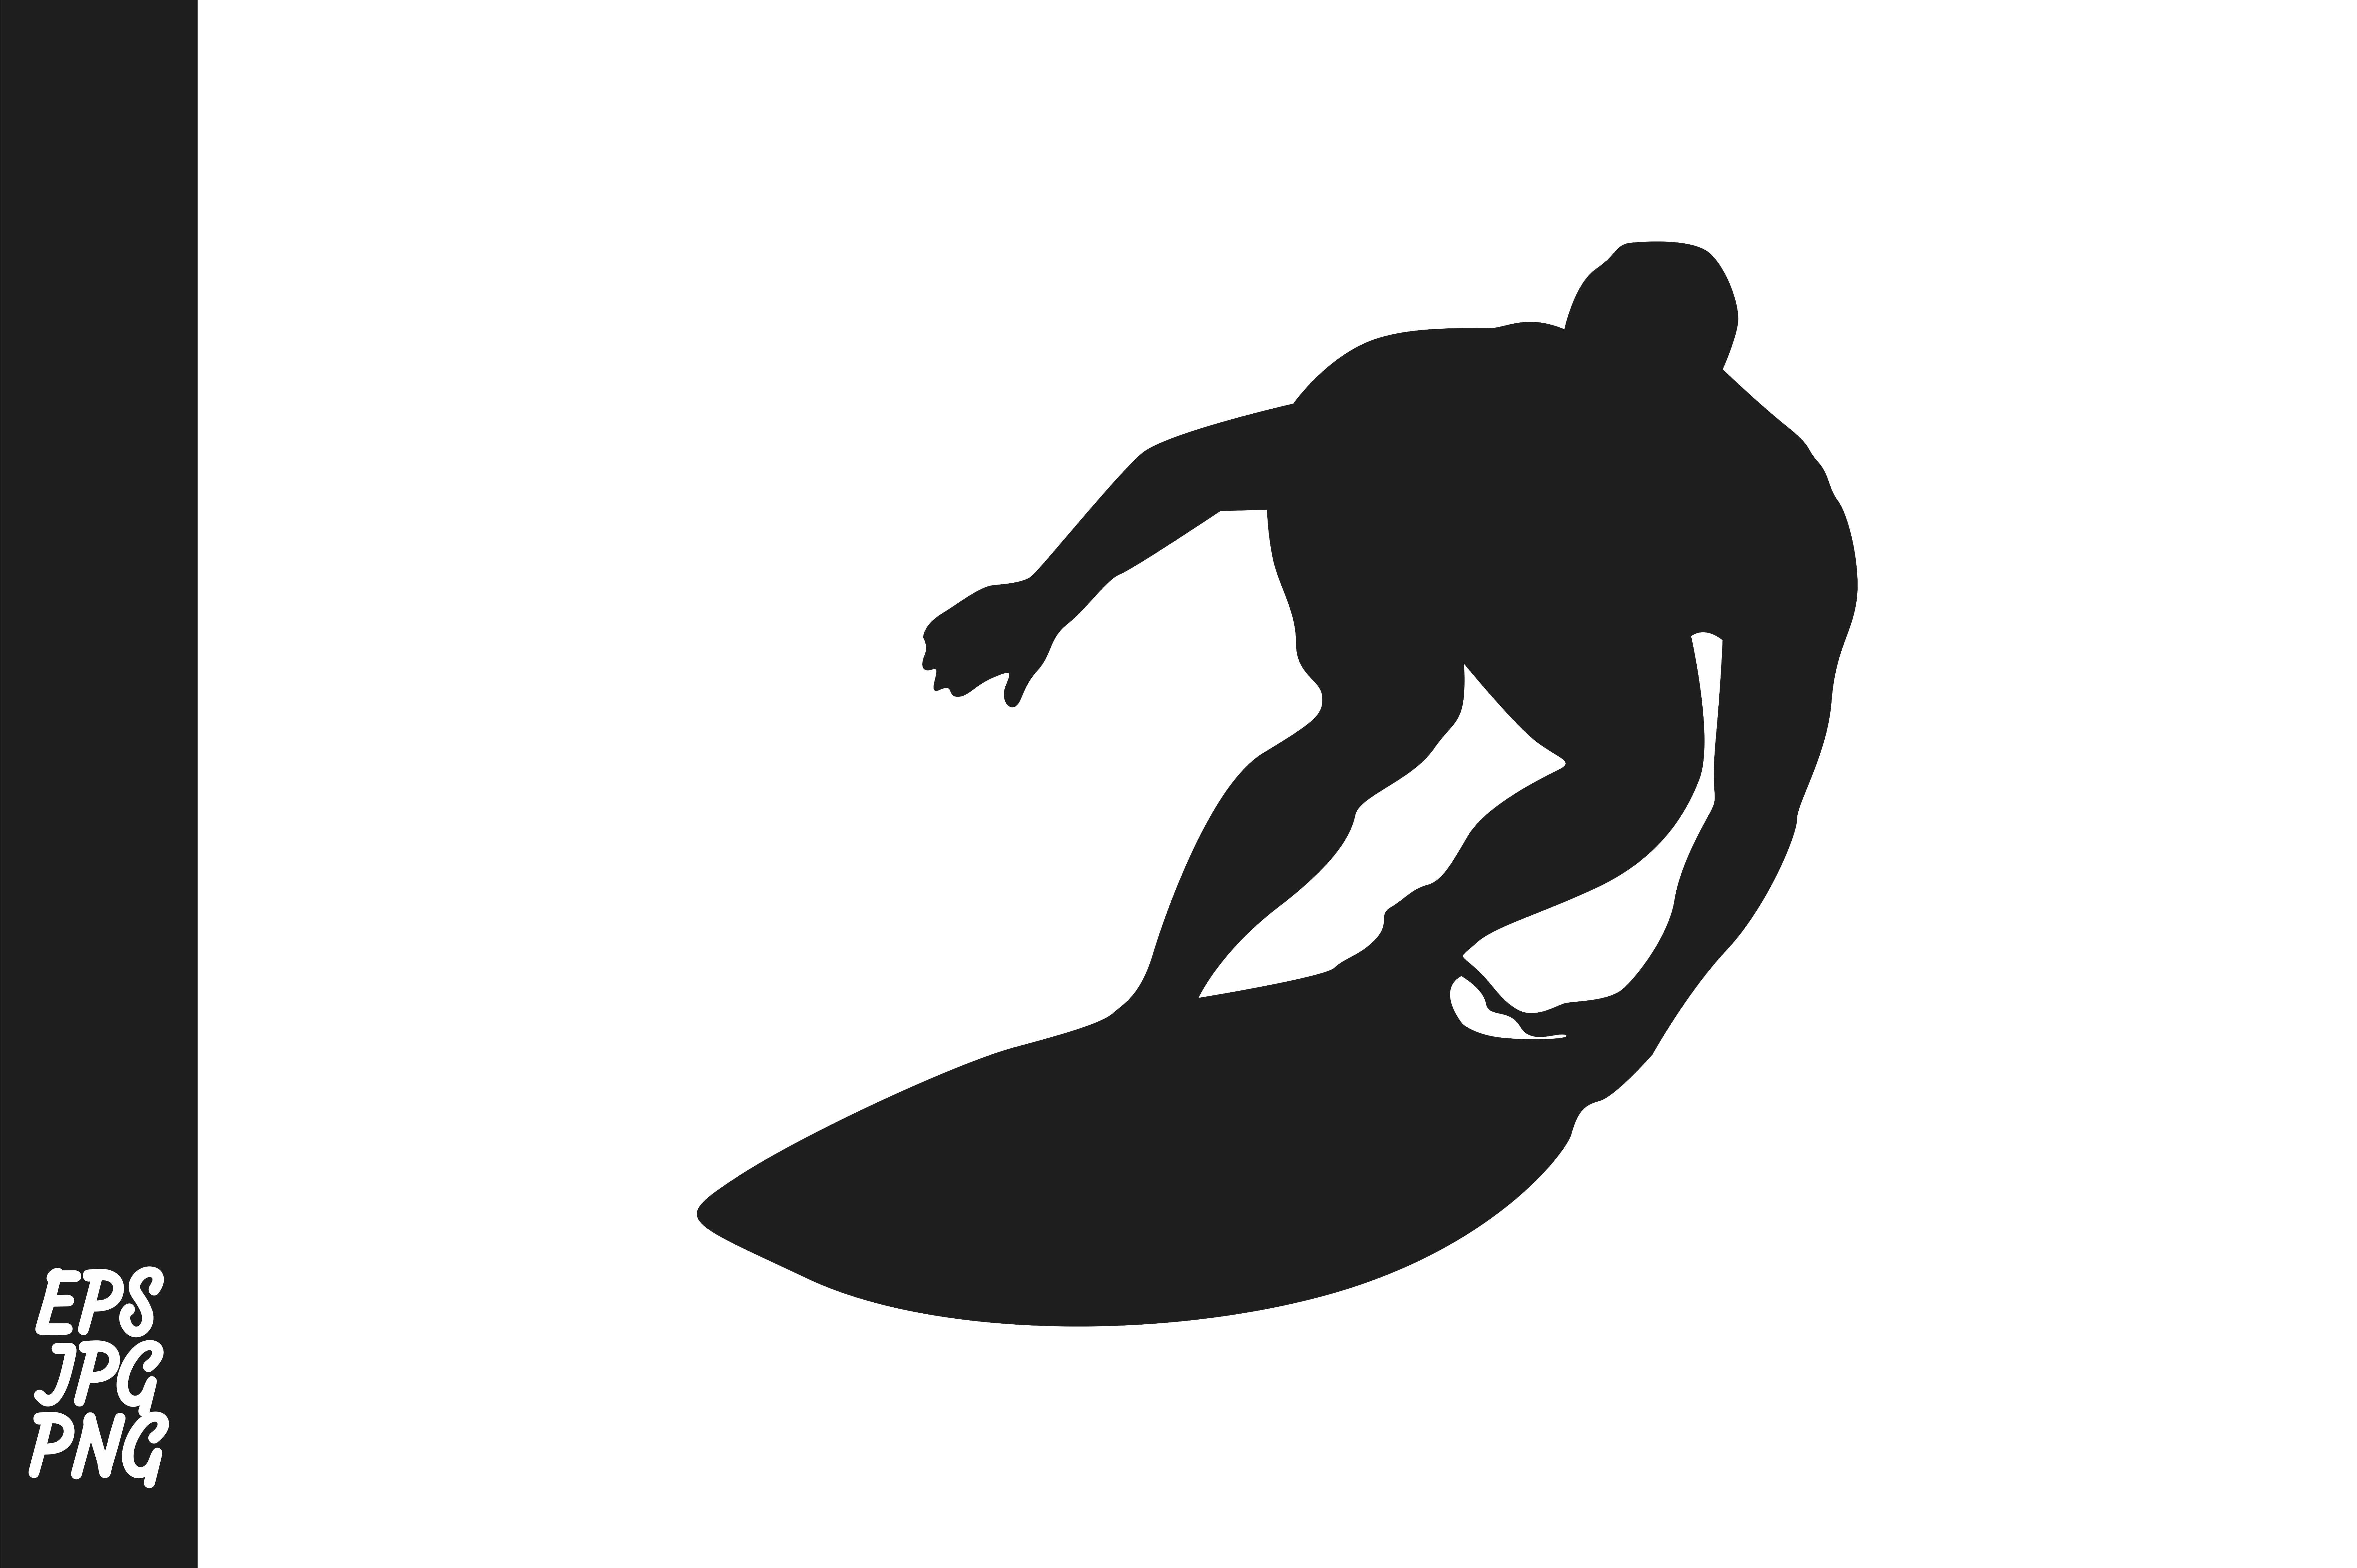 Download Free Surfers Silhouette Graphic By Arief Sapta Adjie Creative Fabrica for Cricut Explore, Silhouette and other cutting machines.